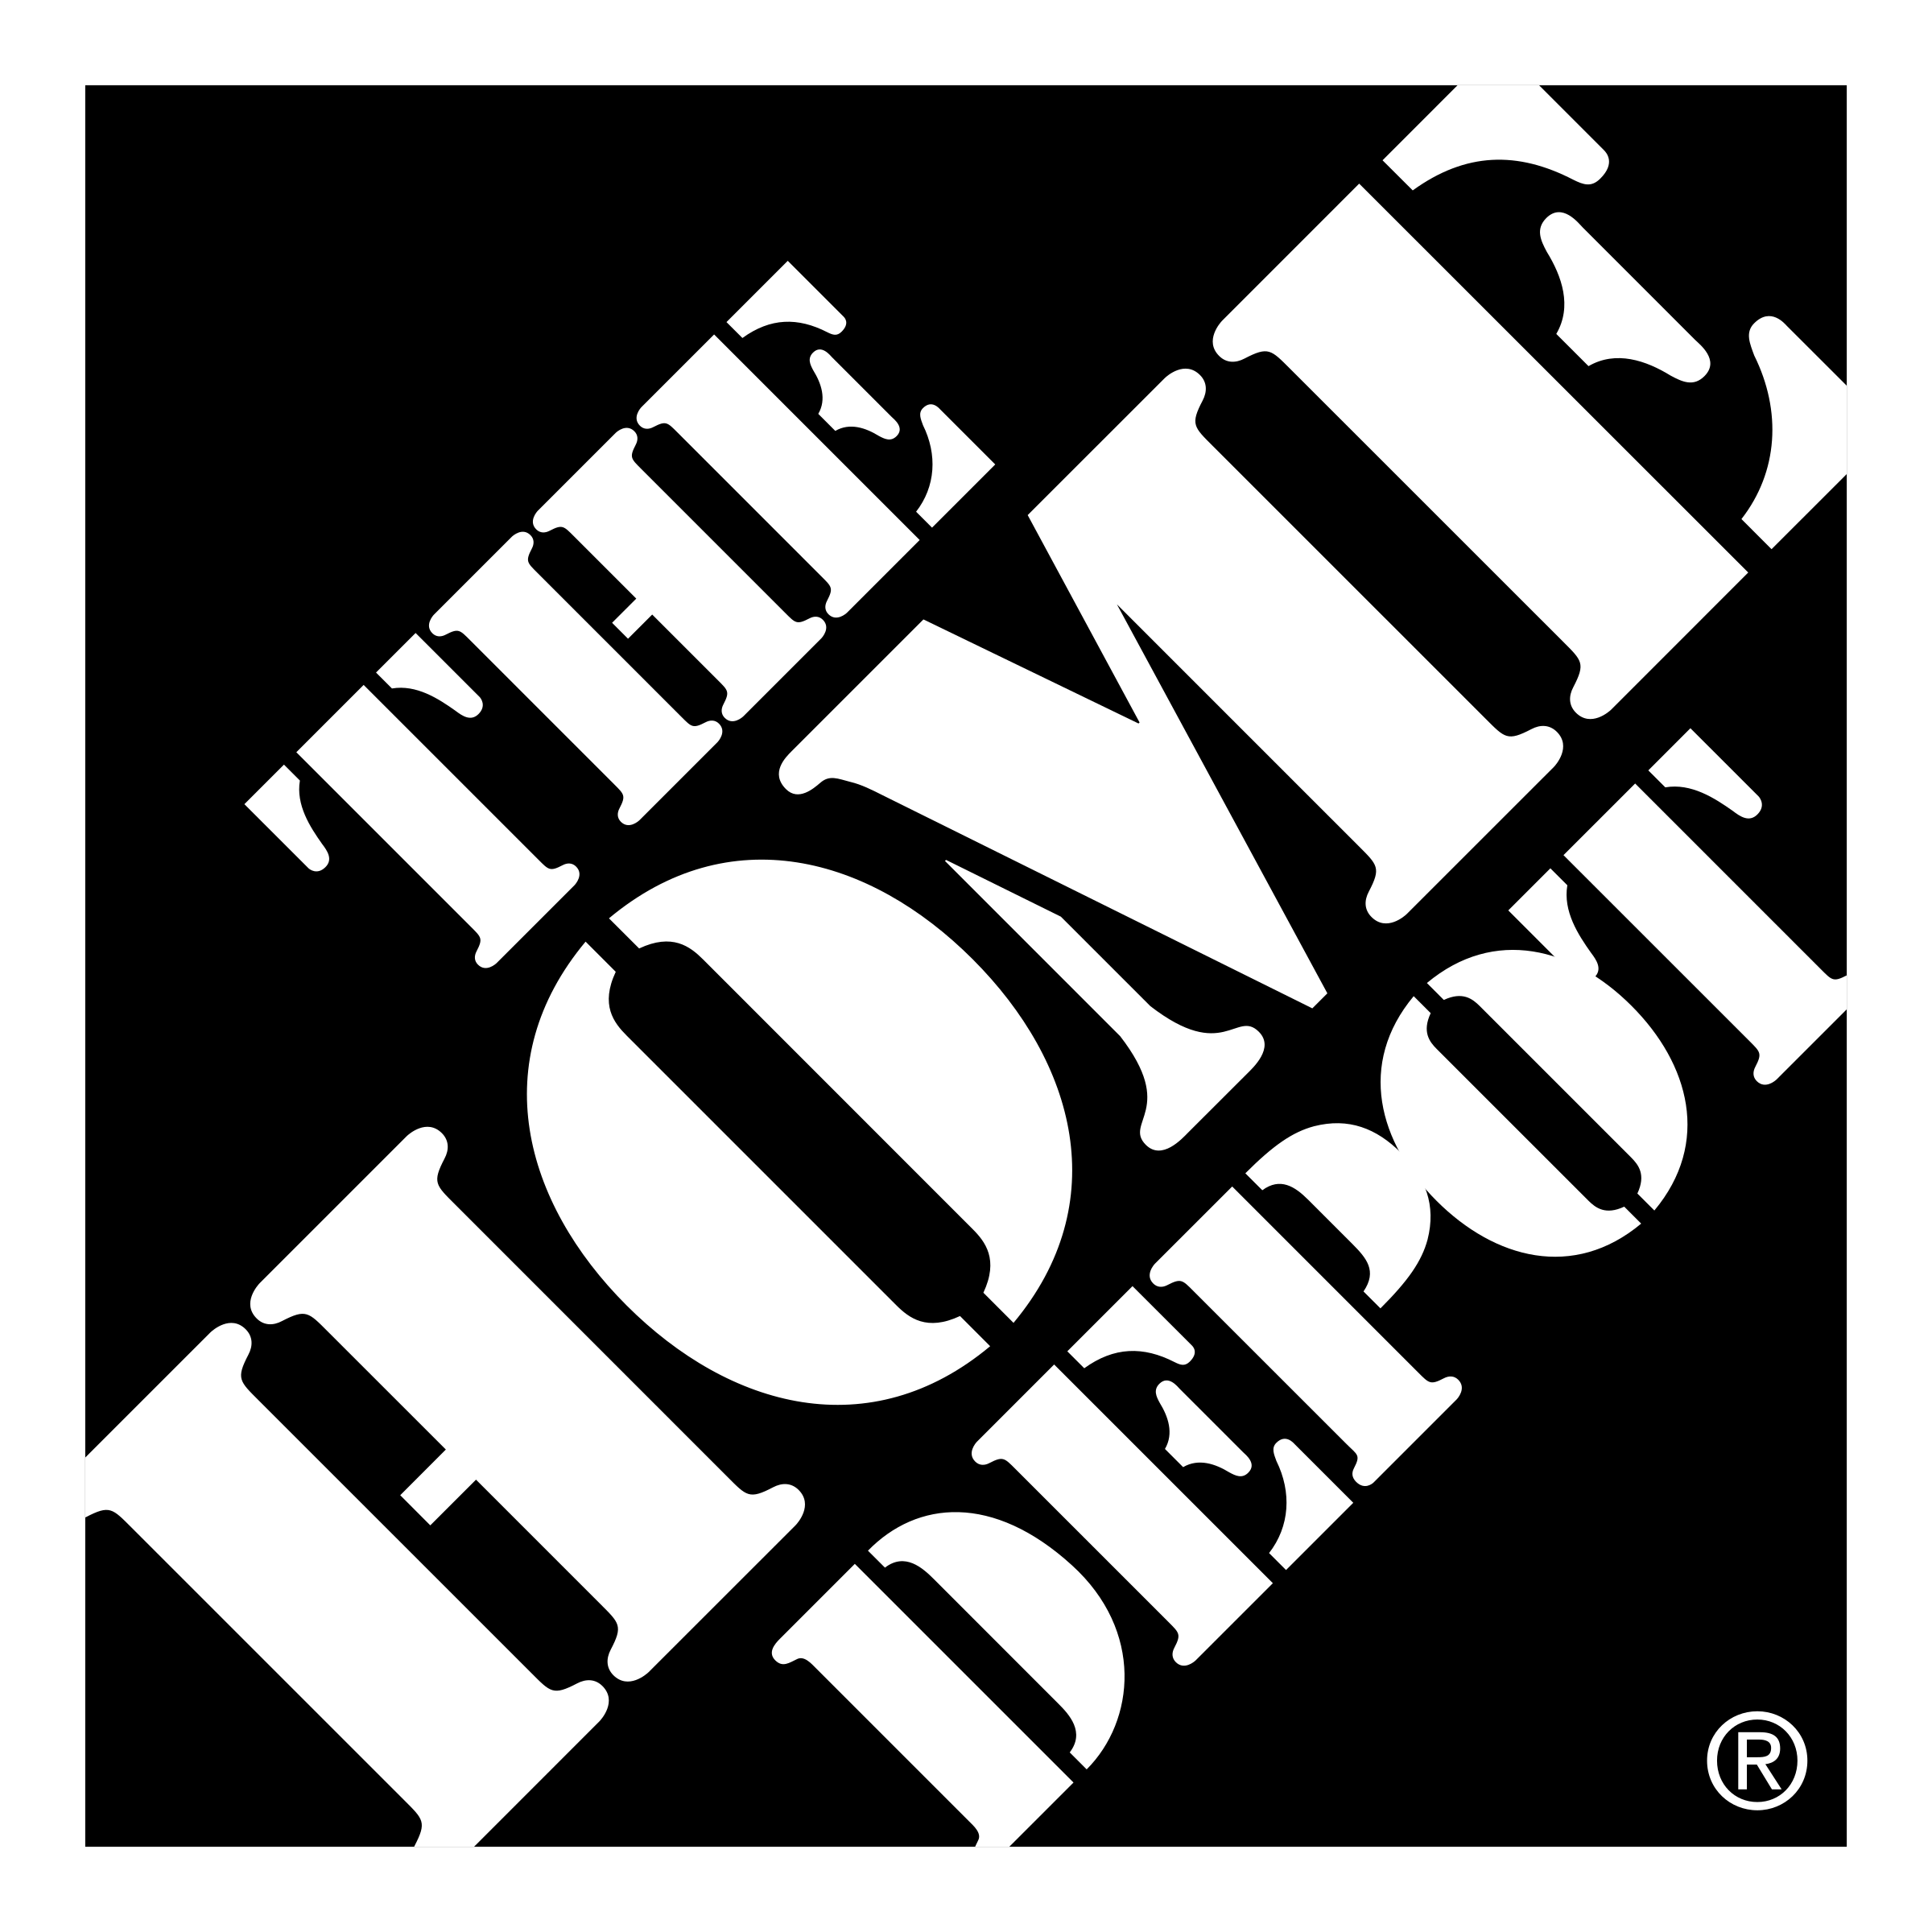 the-home-depot-1-logo-png-transparent.png